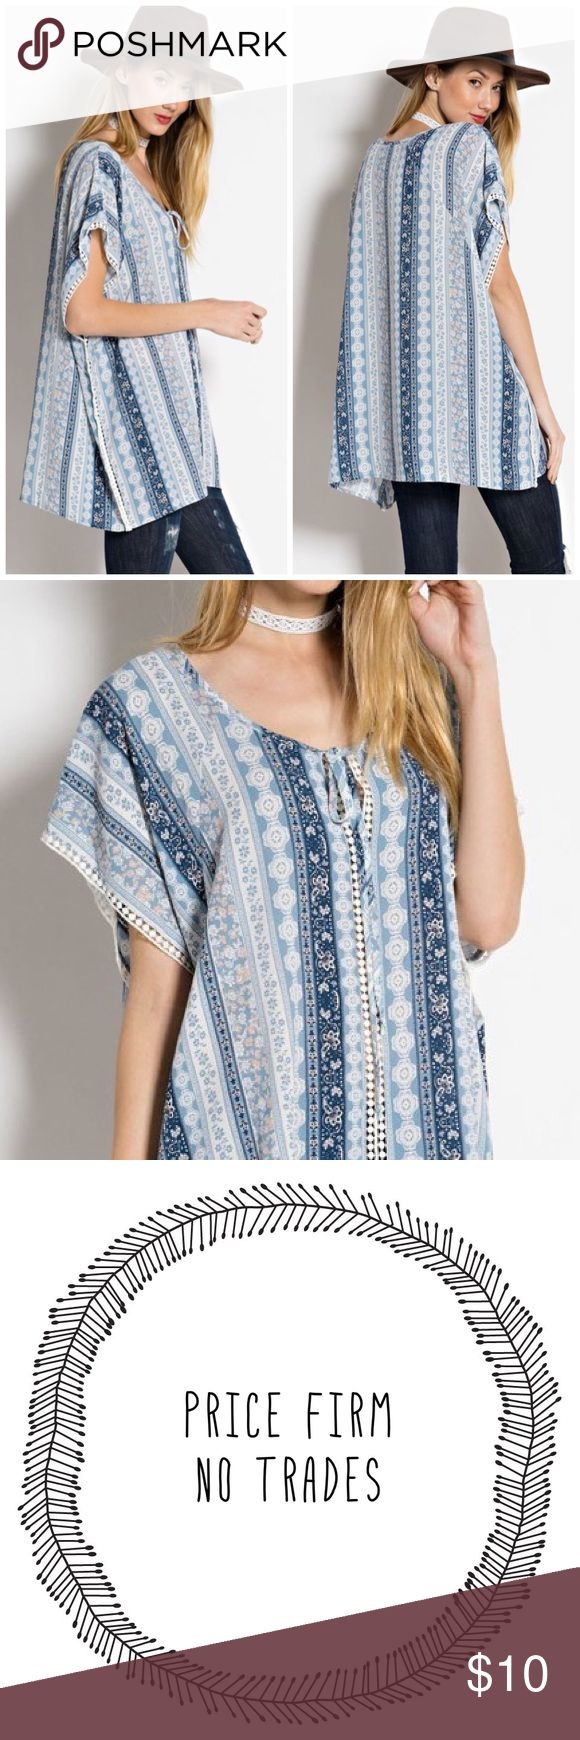 "✳️SALE✳️Blue and White Tunic Top Ocean Blue Country Tunic   Beautiful prints of blue and white tunic top with crochet details running down in the middle. Front tie at the neckline. Made of Poly/ spandex blend. NWOT retail   Measurements  Small Bust 40""/ length 29""  Medium  Bust 42""/ length 29.5""  Large  Bust 44""/ Length 30""  Reasonable offers considered through offer button only Tops Tunics"